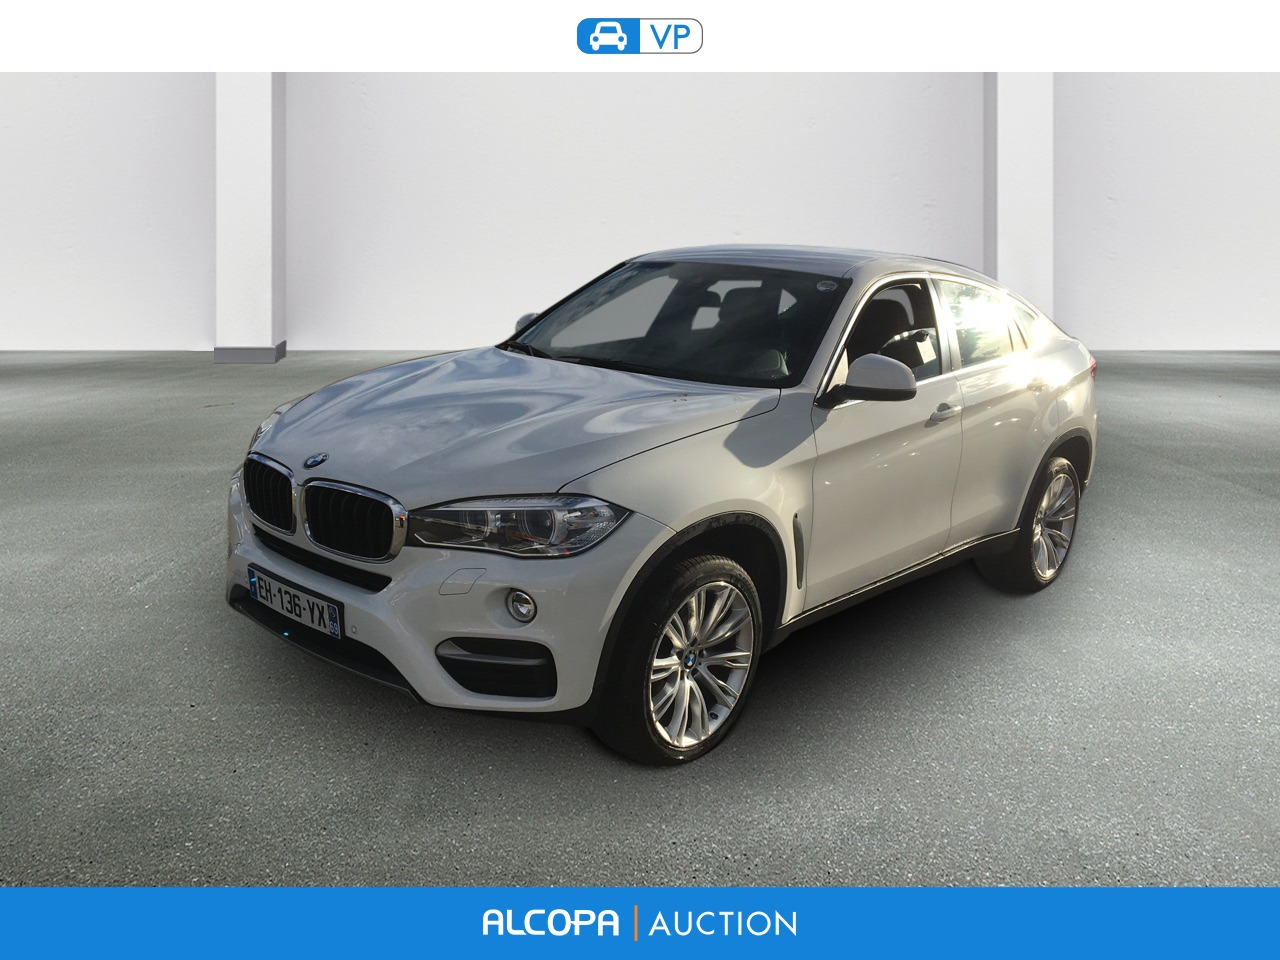 Bmw X6 F16 X6 Xdrive30d 258 Ch Lounge Plus A Alcopa Auction